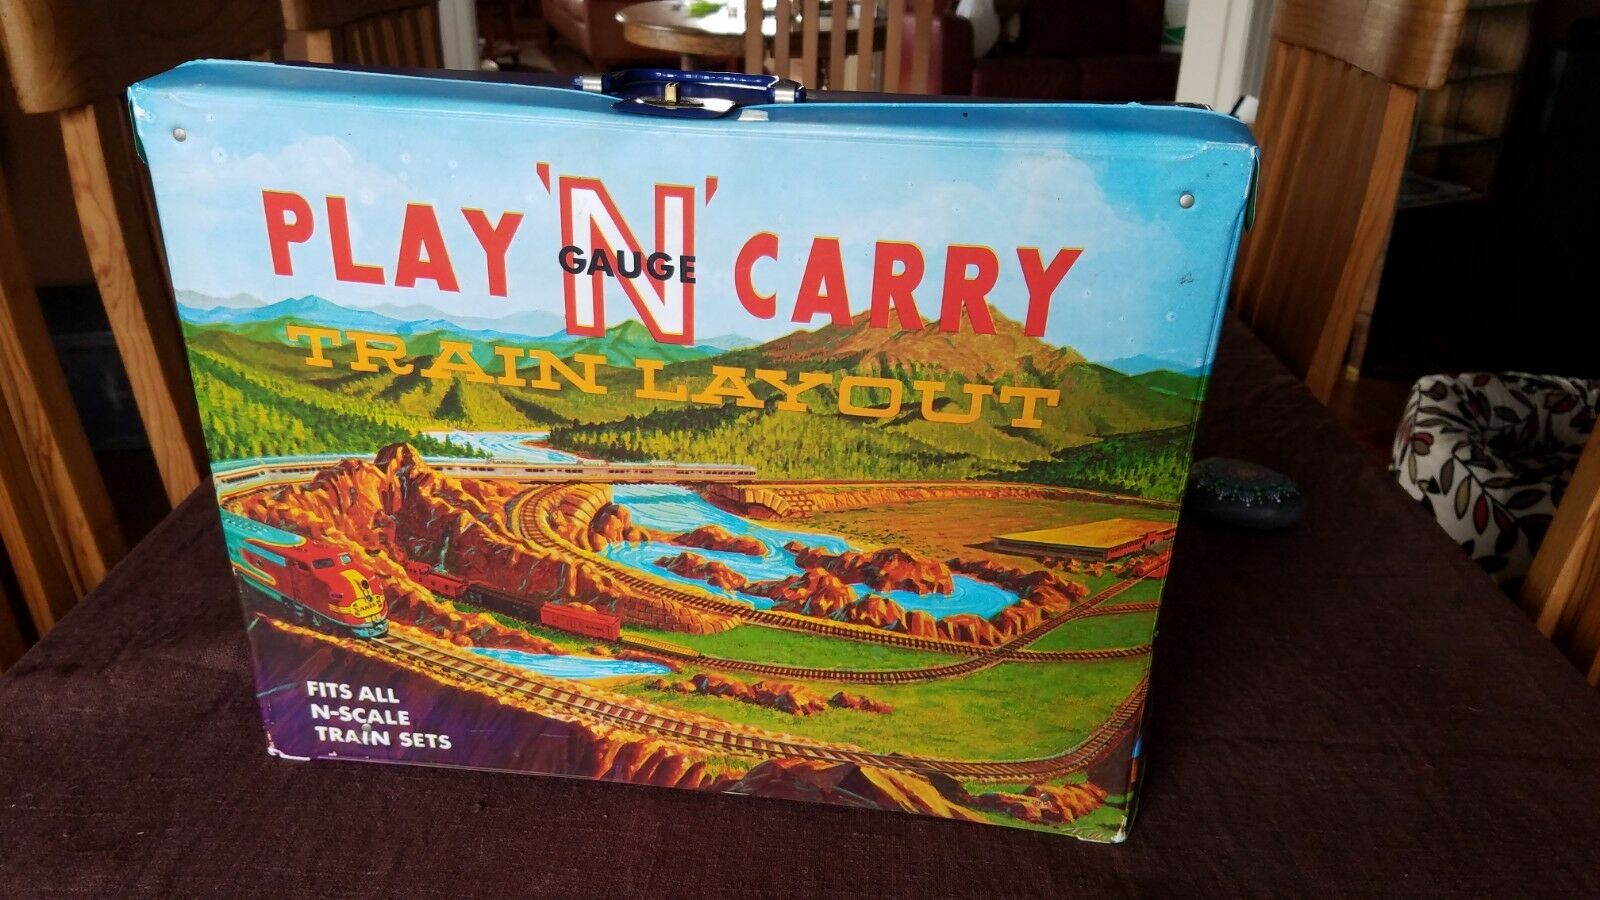 Vintage Ideal Play N' Carry Model Train Layout Carrier with Storage - Very Cool